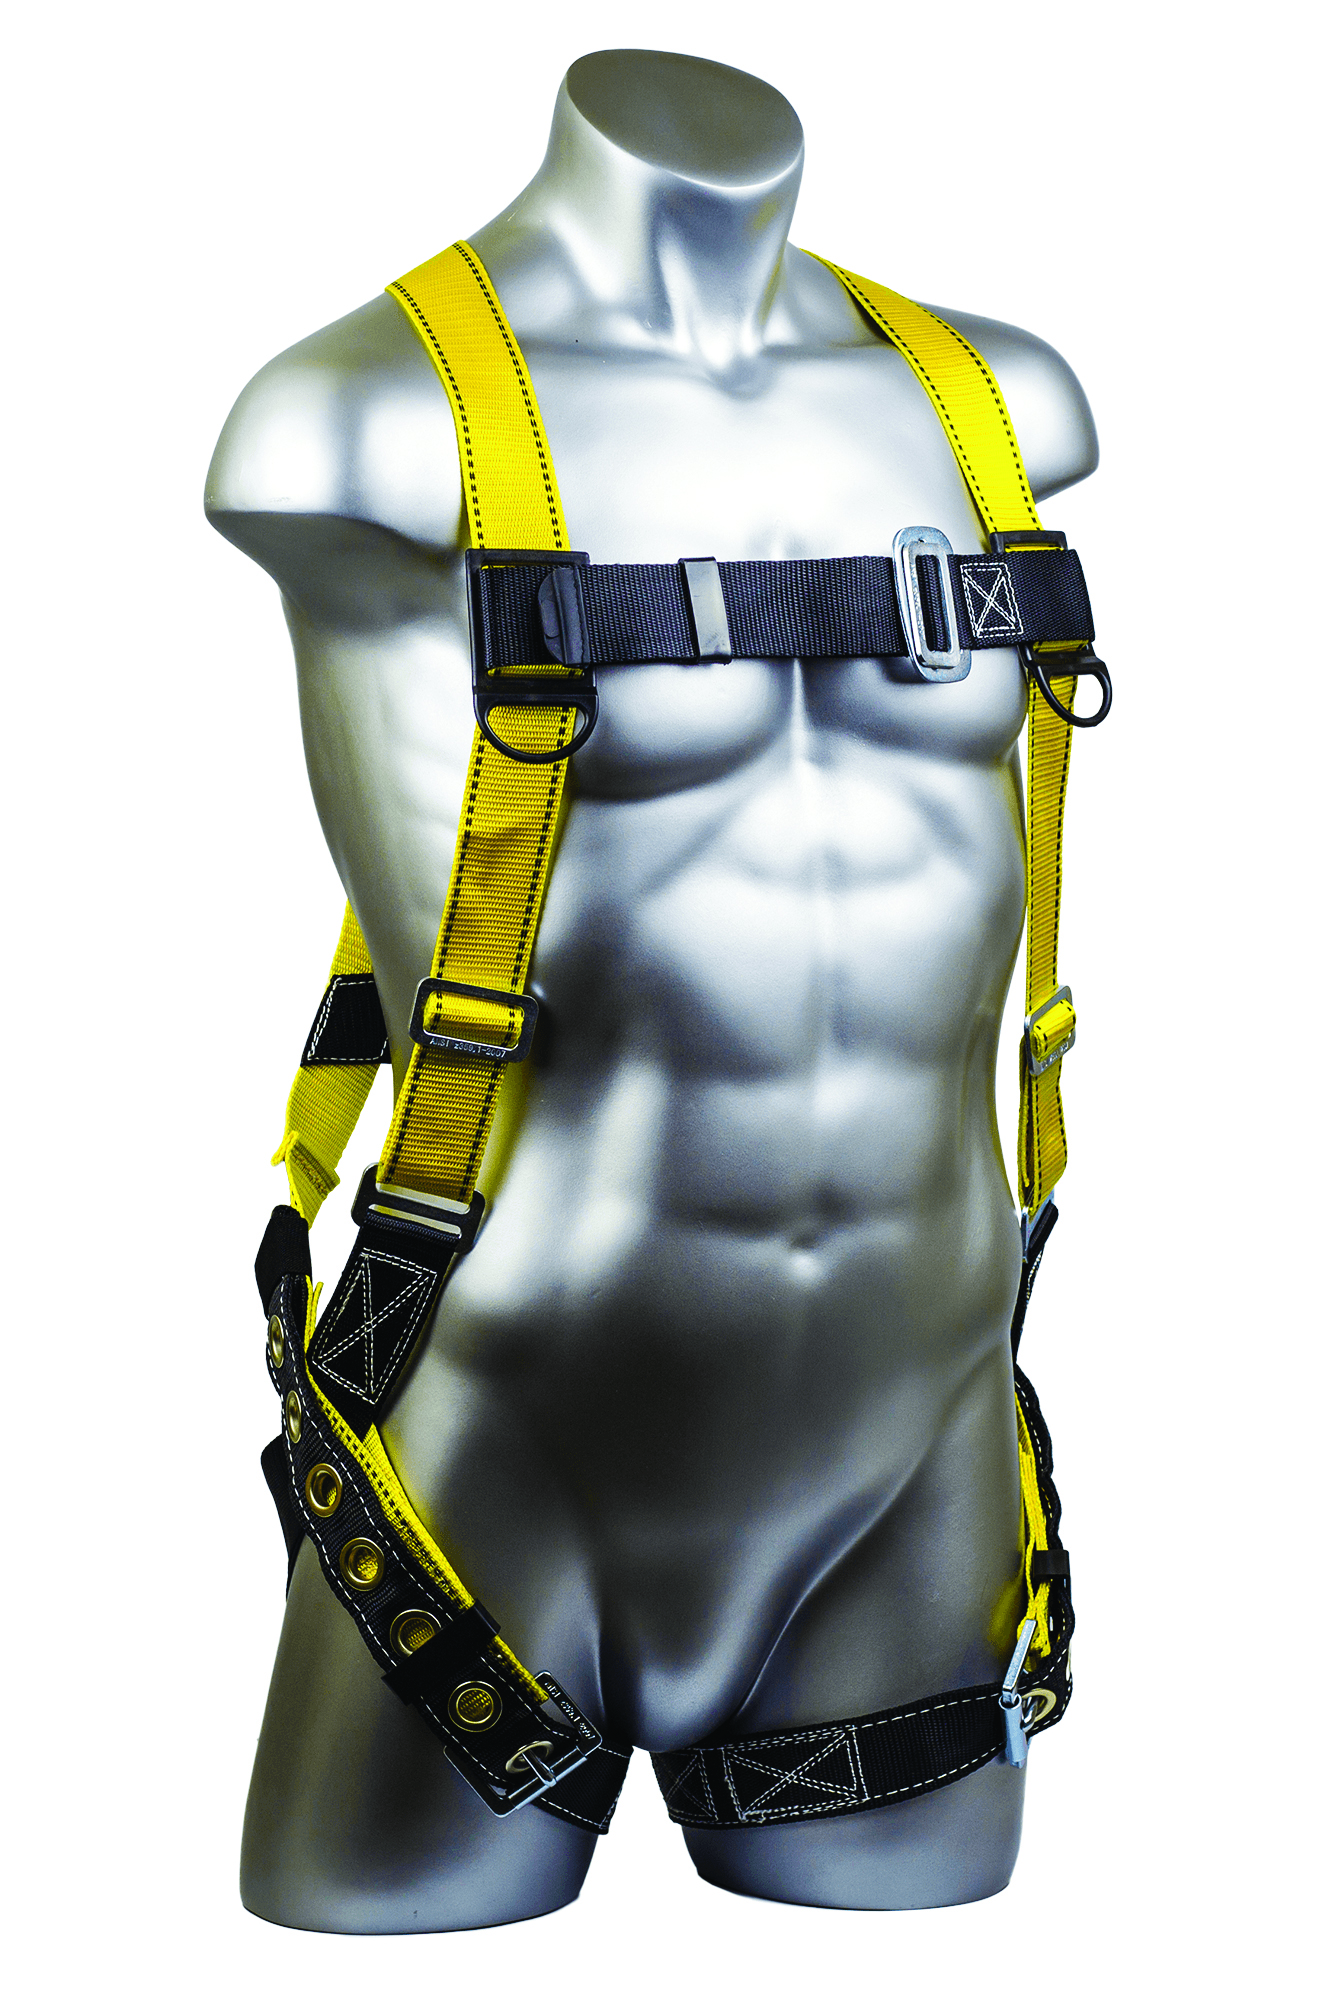 01704 - Velocity Full-Body Harnesses-Velocity Full-Body Harnesses-Size: XL-2XL,Pass-Through Chest Buckles, Leg Tongue Buckles, Dorsal D-ring----UOM: 1/EA